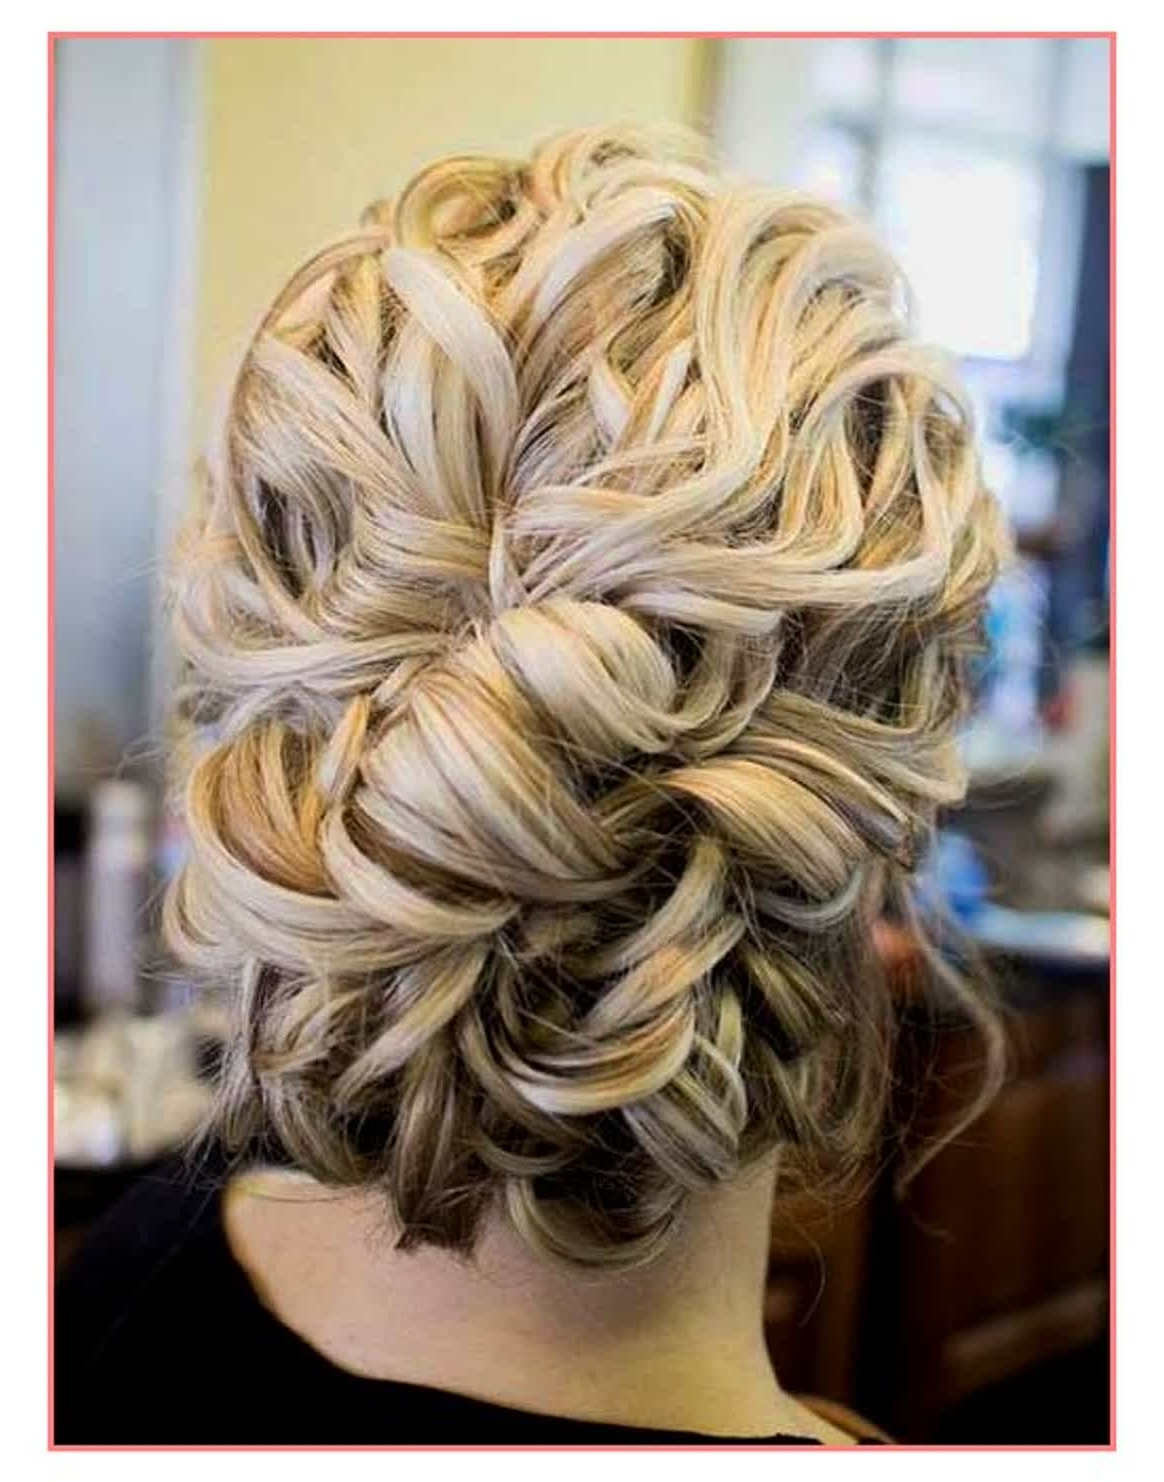 Newest Cute Wedding Hairstyles For Bridesmaids With Cute Hairstyles Garden Wedding Hairstyles For Bridesmaids – Best (View 6 of 15)